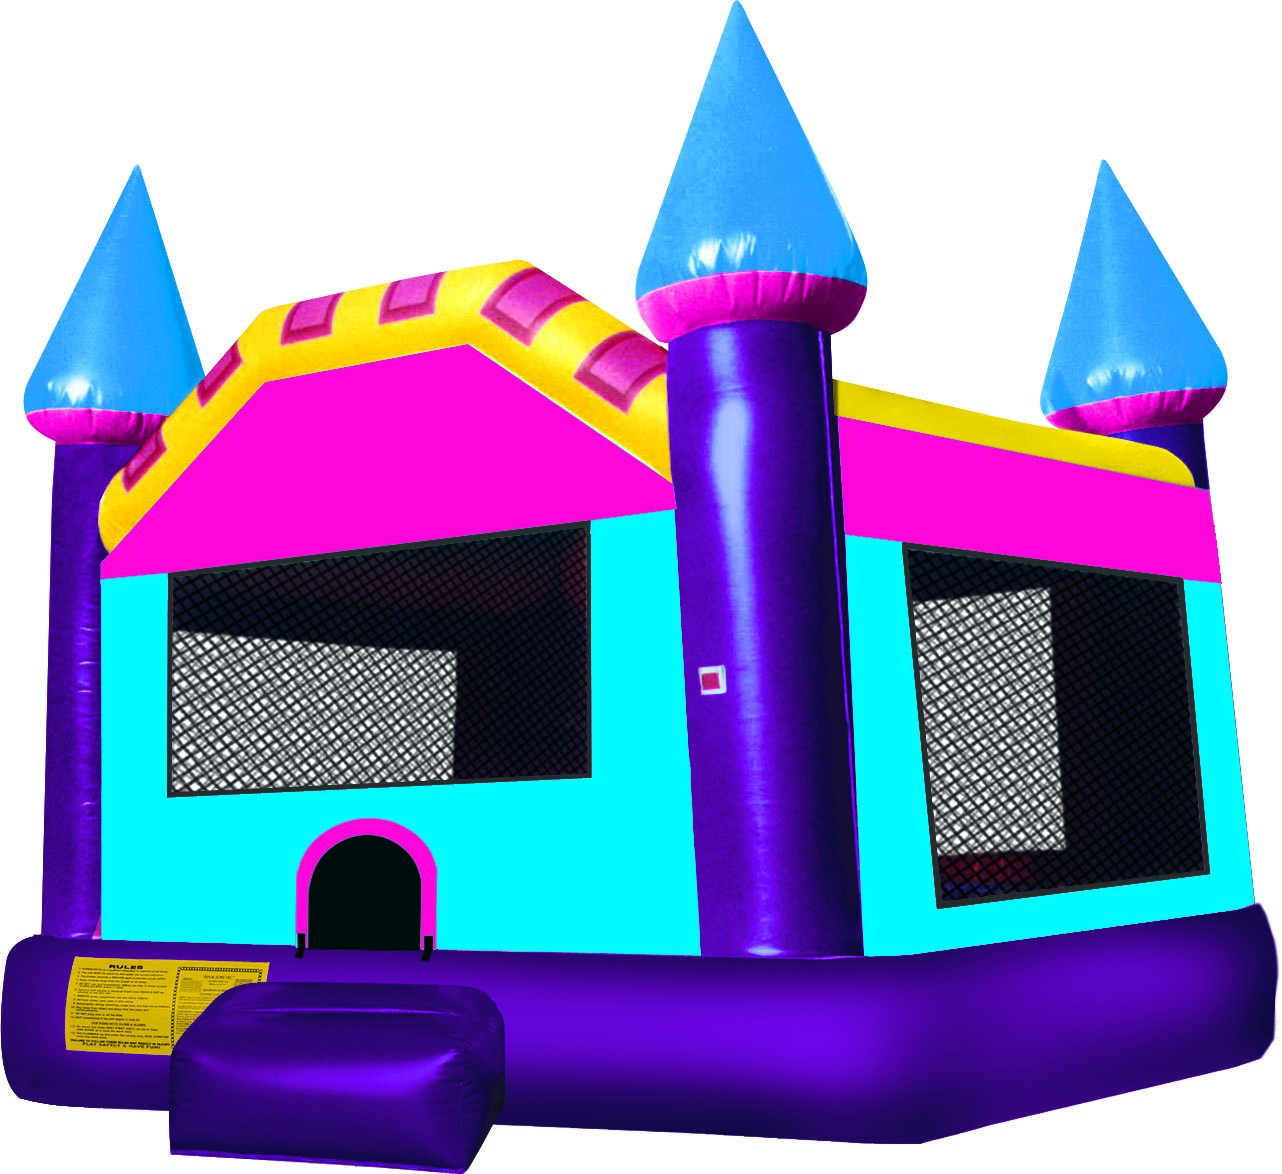 Waterslid bouncy house clipart png black and white Inflatable Water Slide Clipart | Free download best Inflatable Water ... png black and white